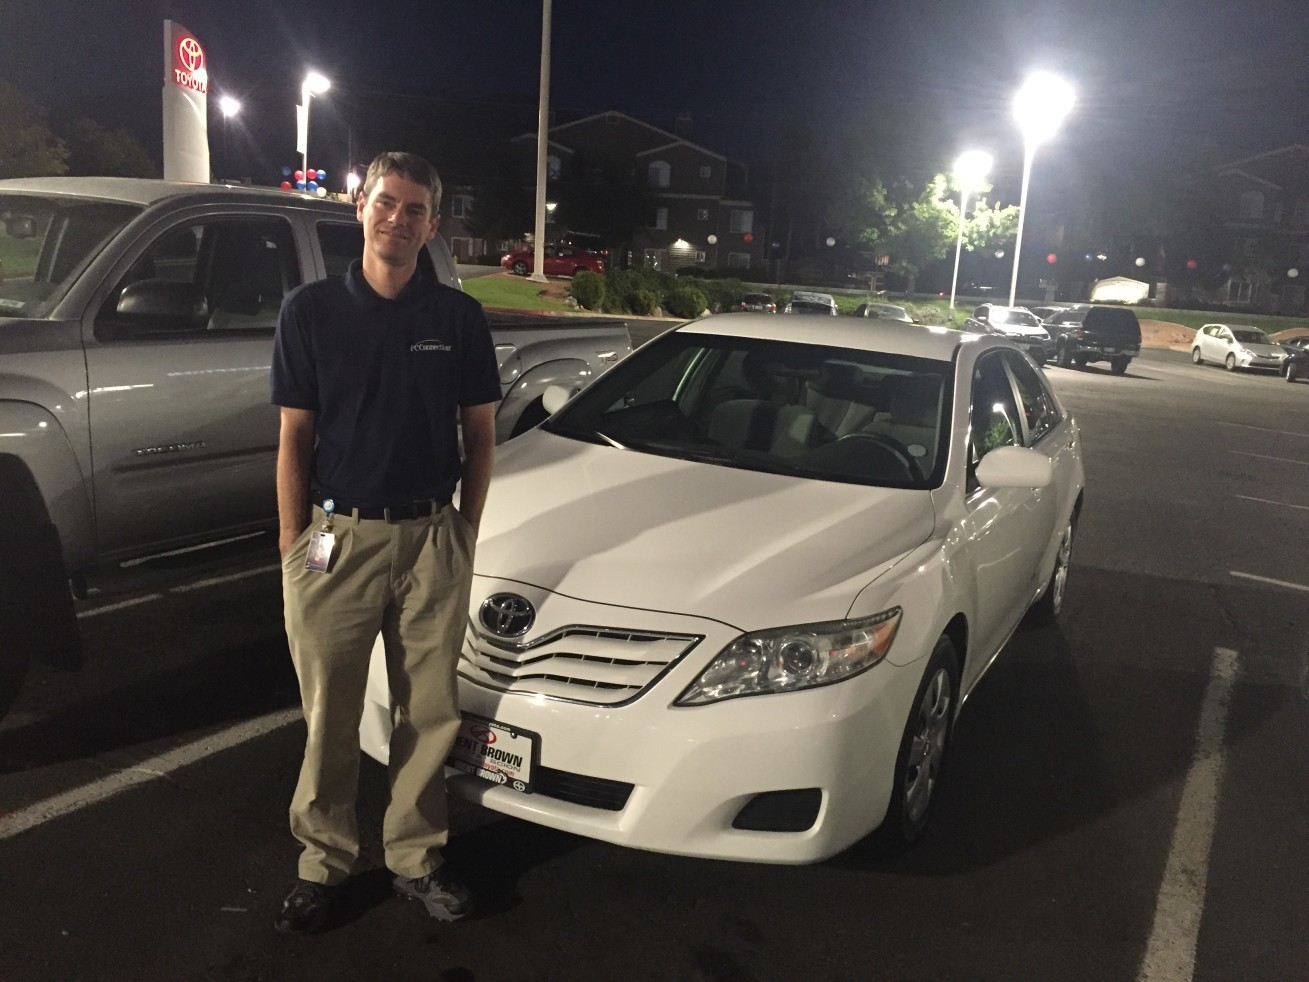 Ben Richins Reviews The 2011 Toyota Camry He Purchased From Brent Brown  Toyota In Orem UT